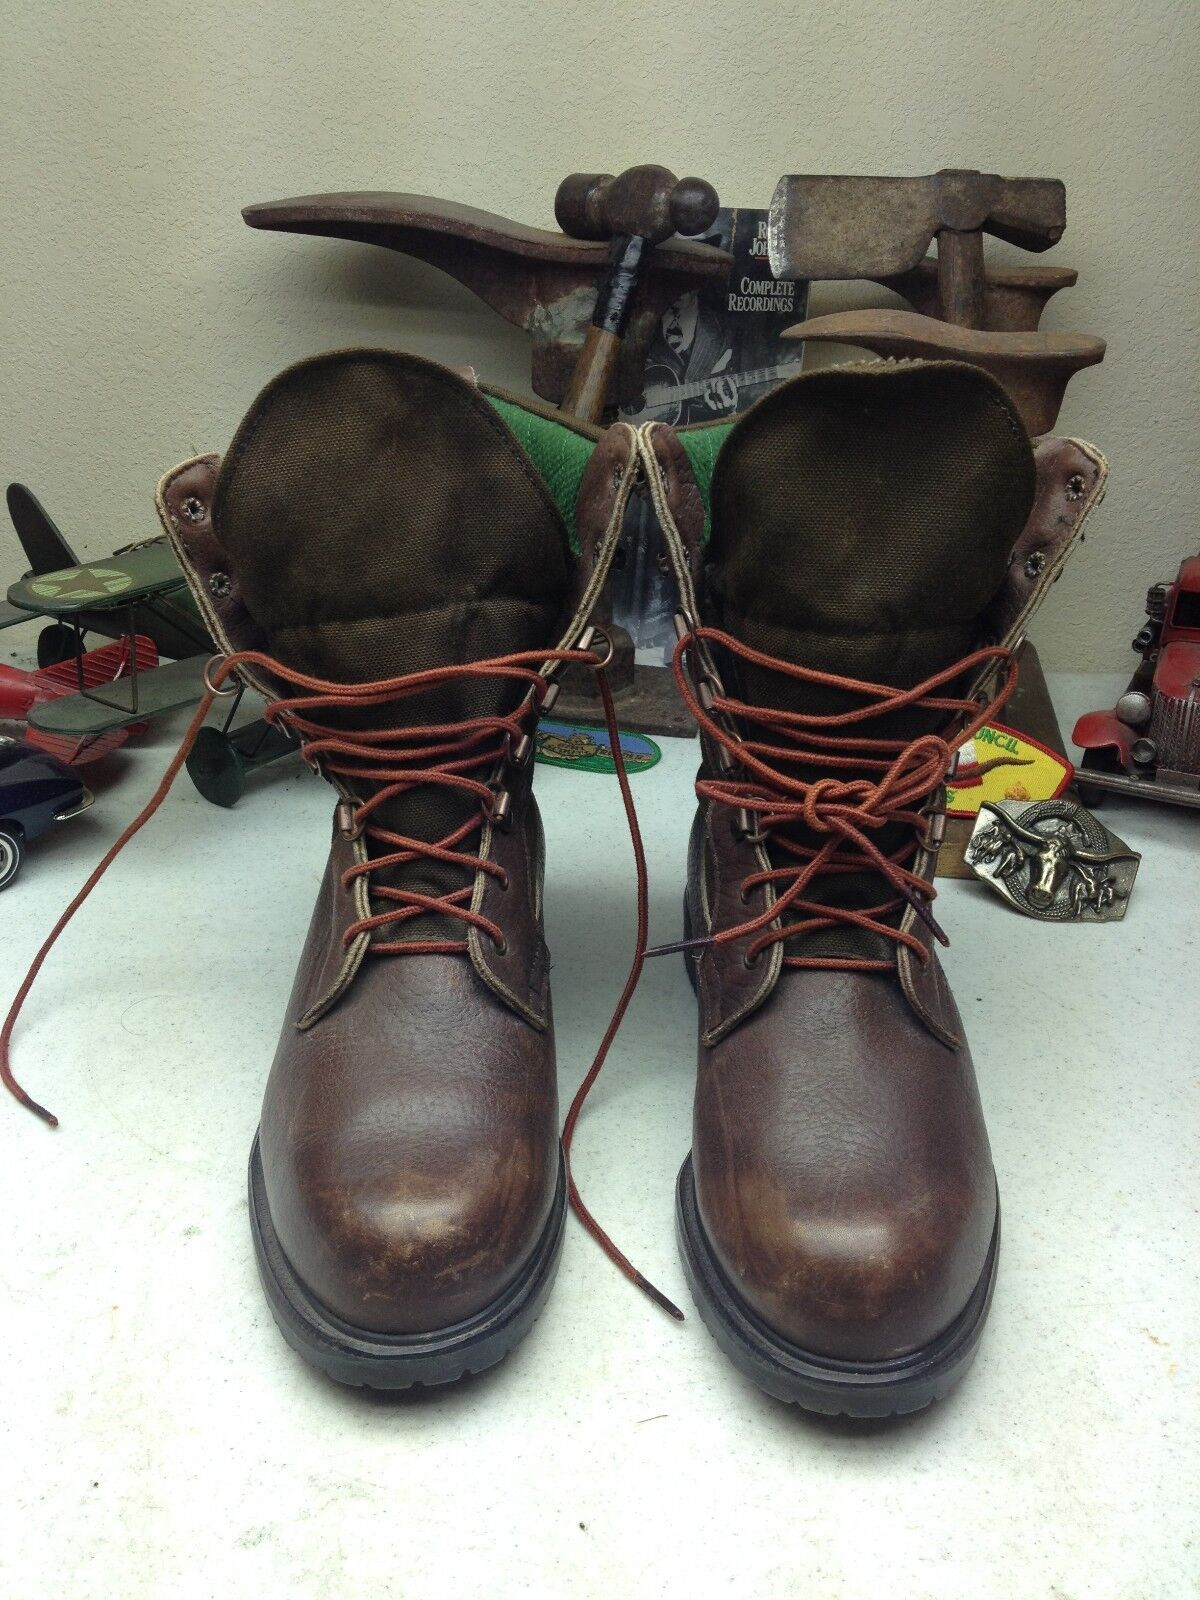 VINTAGE USA BROWNING DISTRESSED BROWN LEATHER & CANVAS LACE UP HUNTING BOOTS 9 D